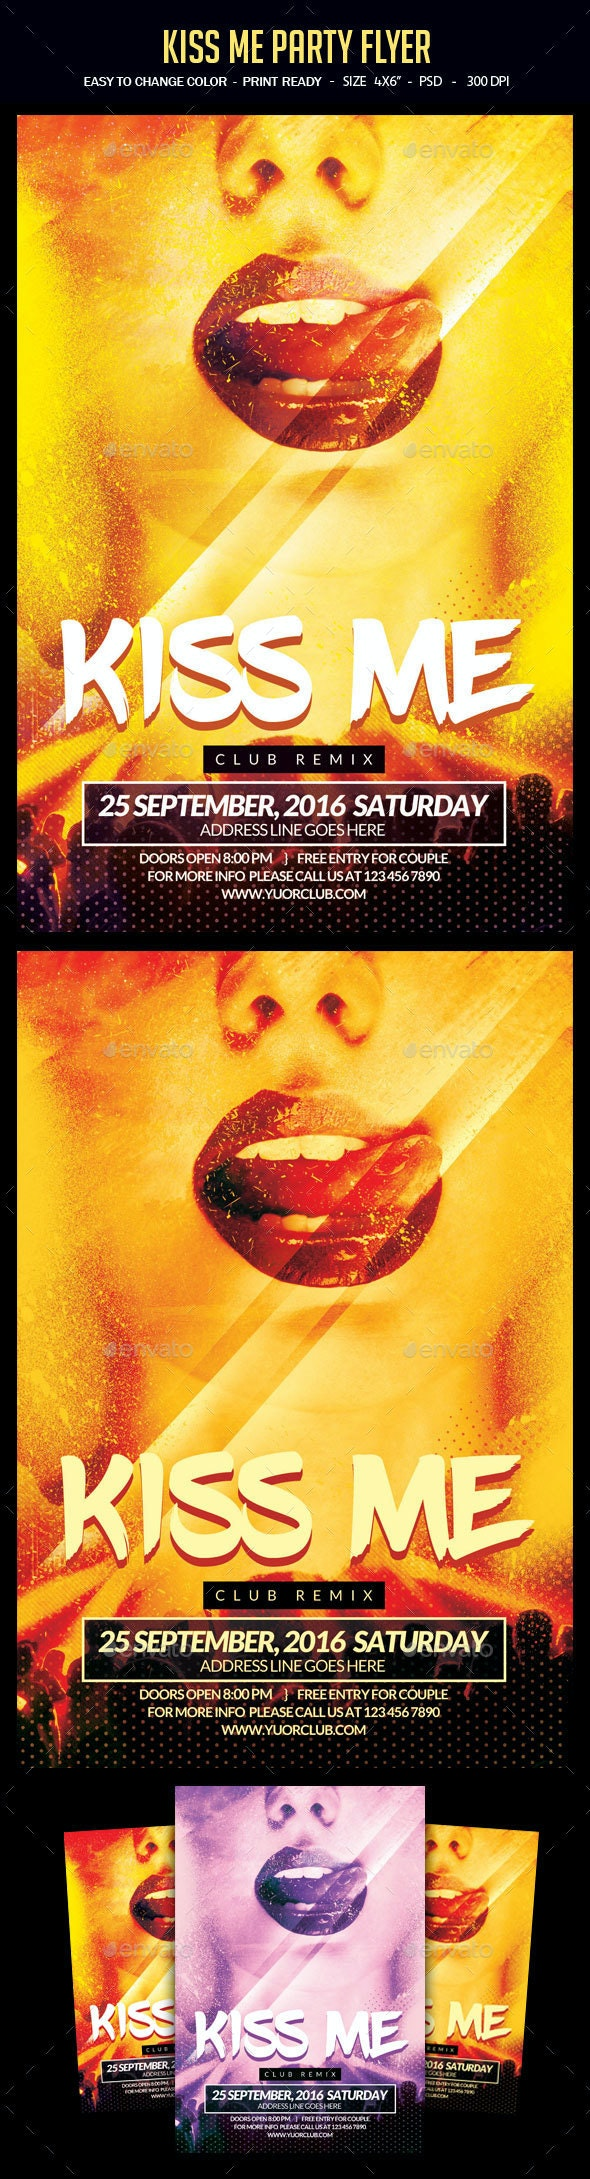 Kiss Me Party Flyer - Clubs & Parties Events